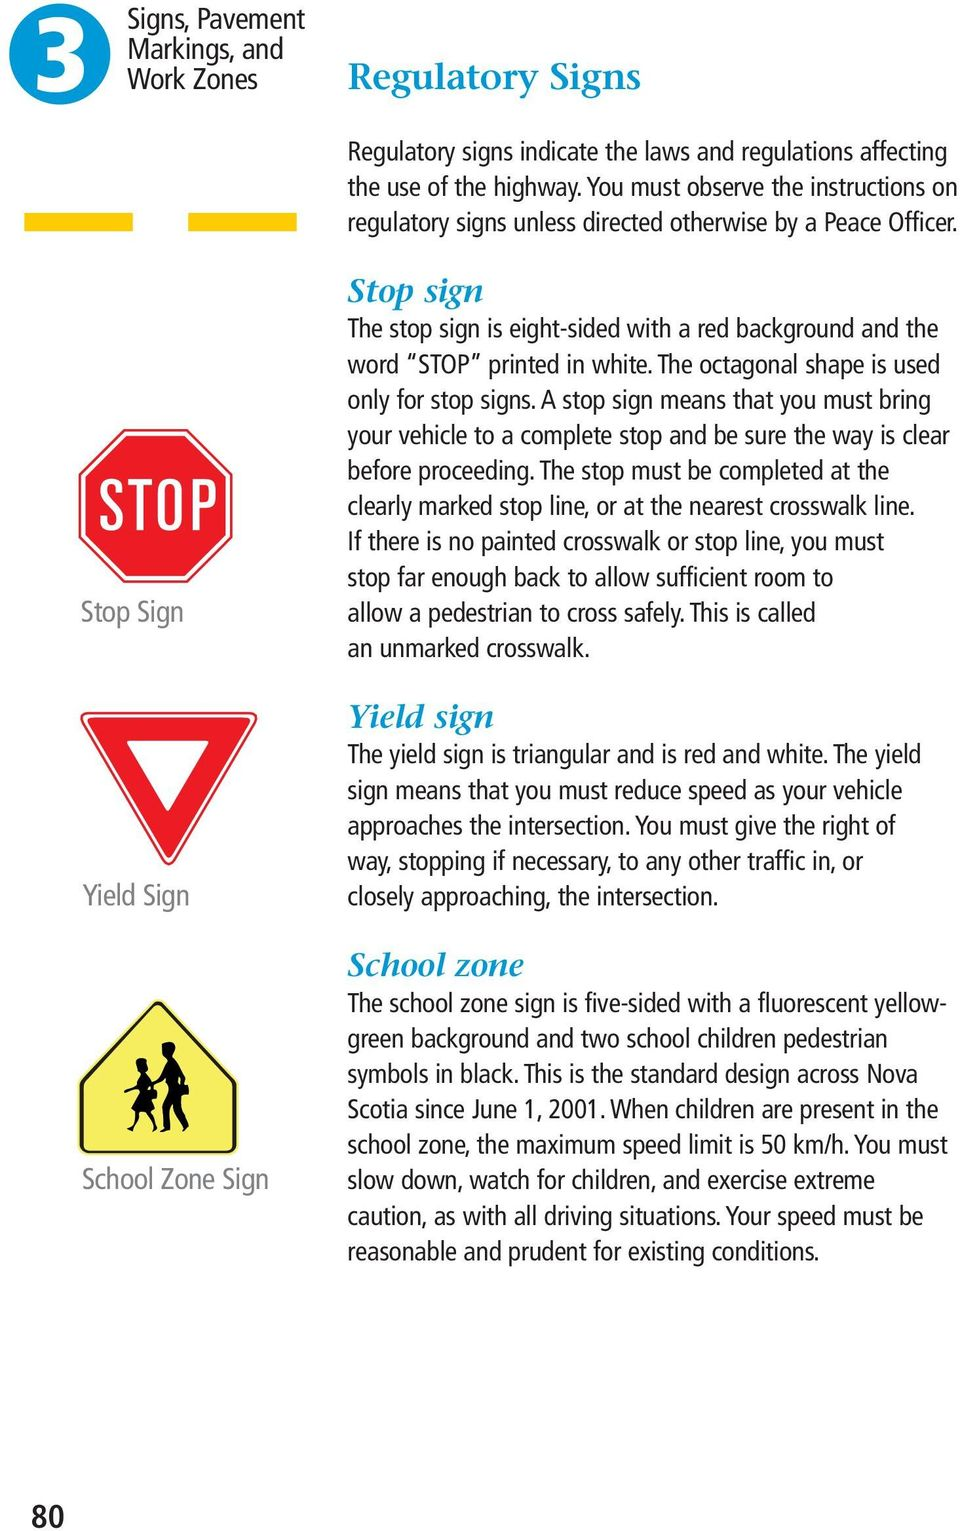 Stop Sign Yield Sign School Zone Sign Stop sign The stop sign is eight-sided with a red background and the word STOP printed in white. The octagonal shape is used only for stop signs.